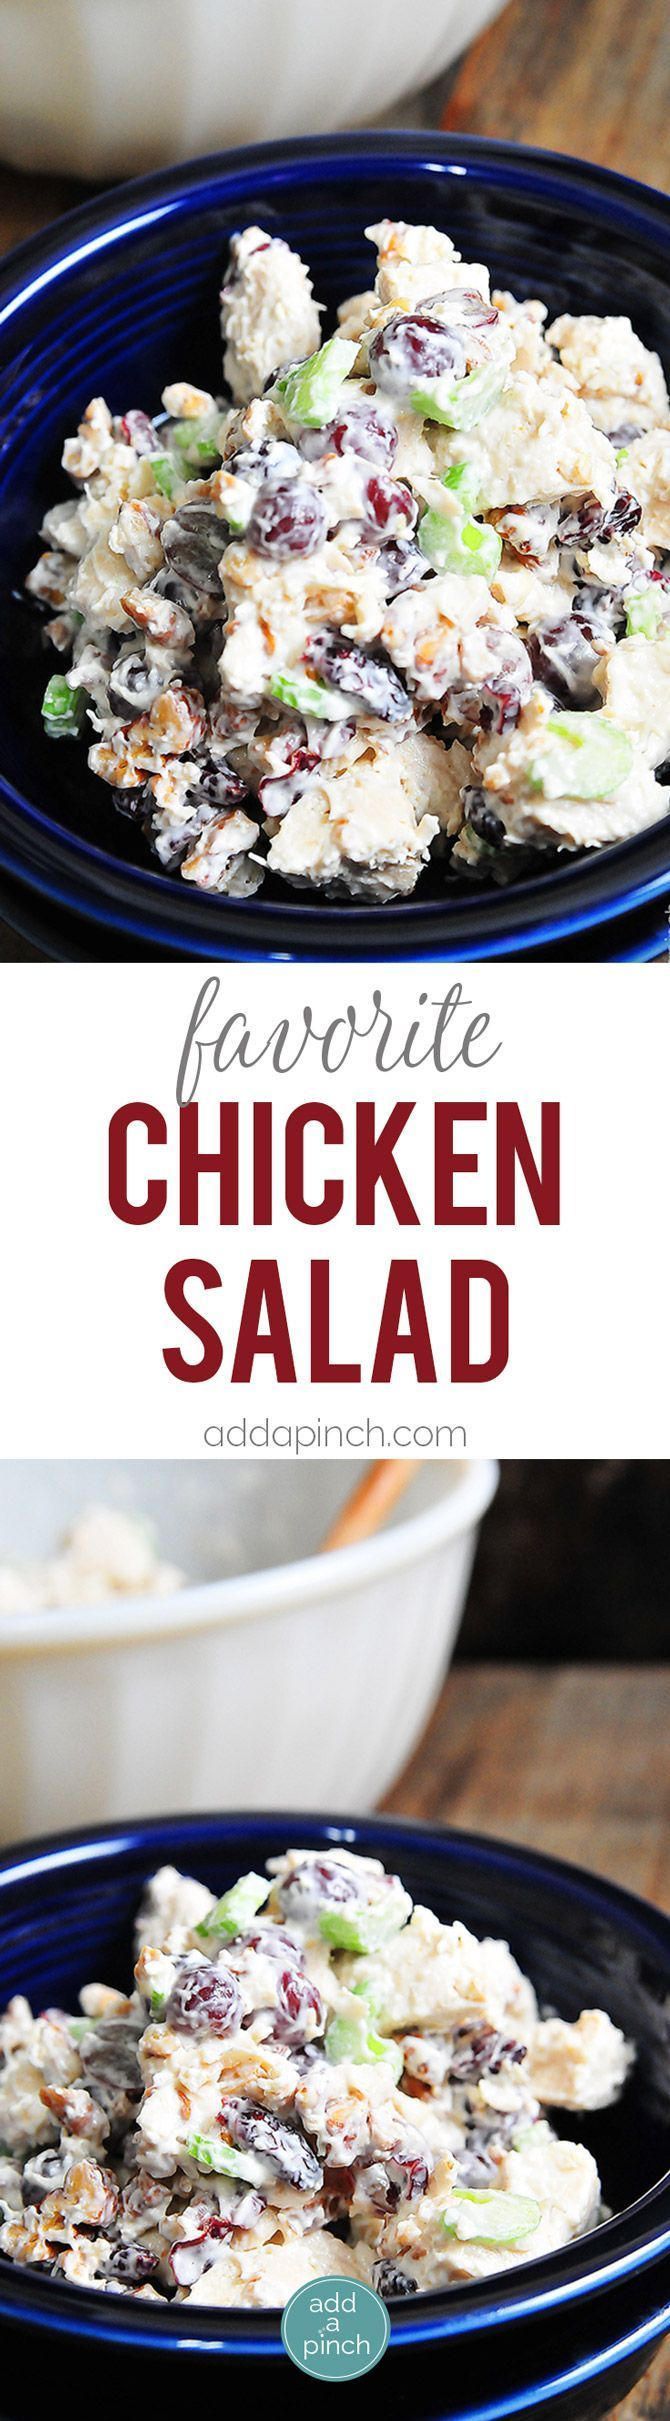 Chicken Salad Recipe - This chicken salad recipe makes a delicious, quick meal. Made with chicken, grapes, and roasted nuts, it is always a favorite! If you want to lighten up this delicious favorite, use Greek yogurt instead of mayo! // addapinch.com